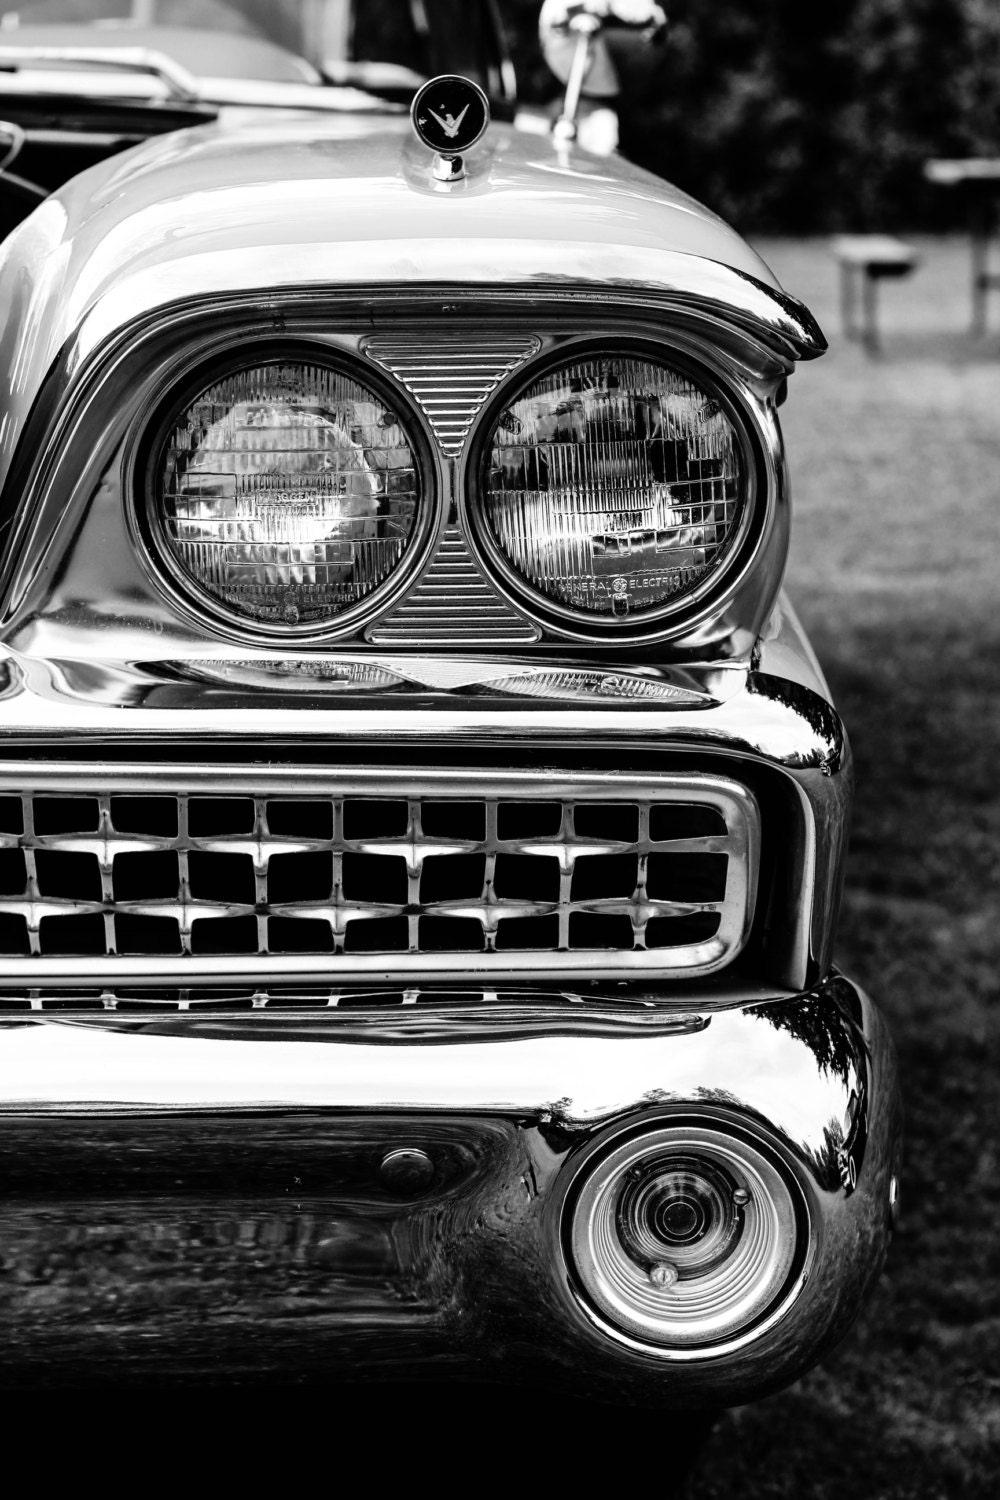 Classic Car Black and White Photography